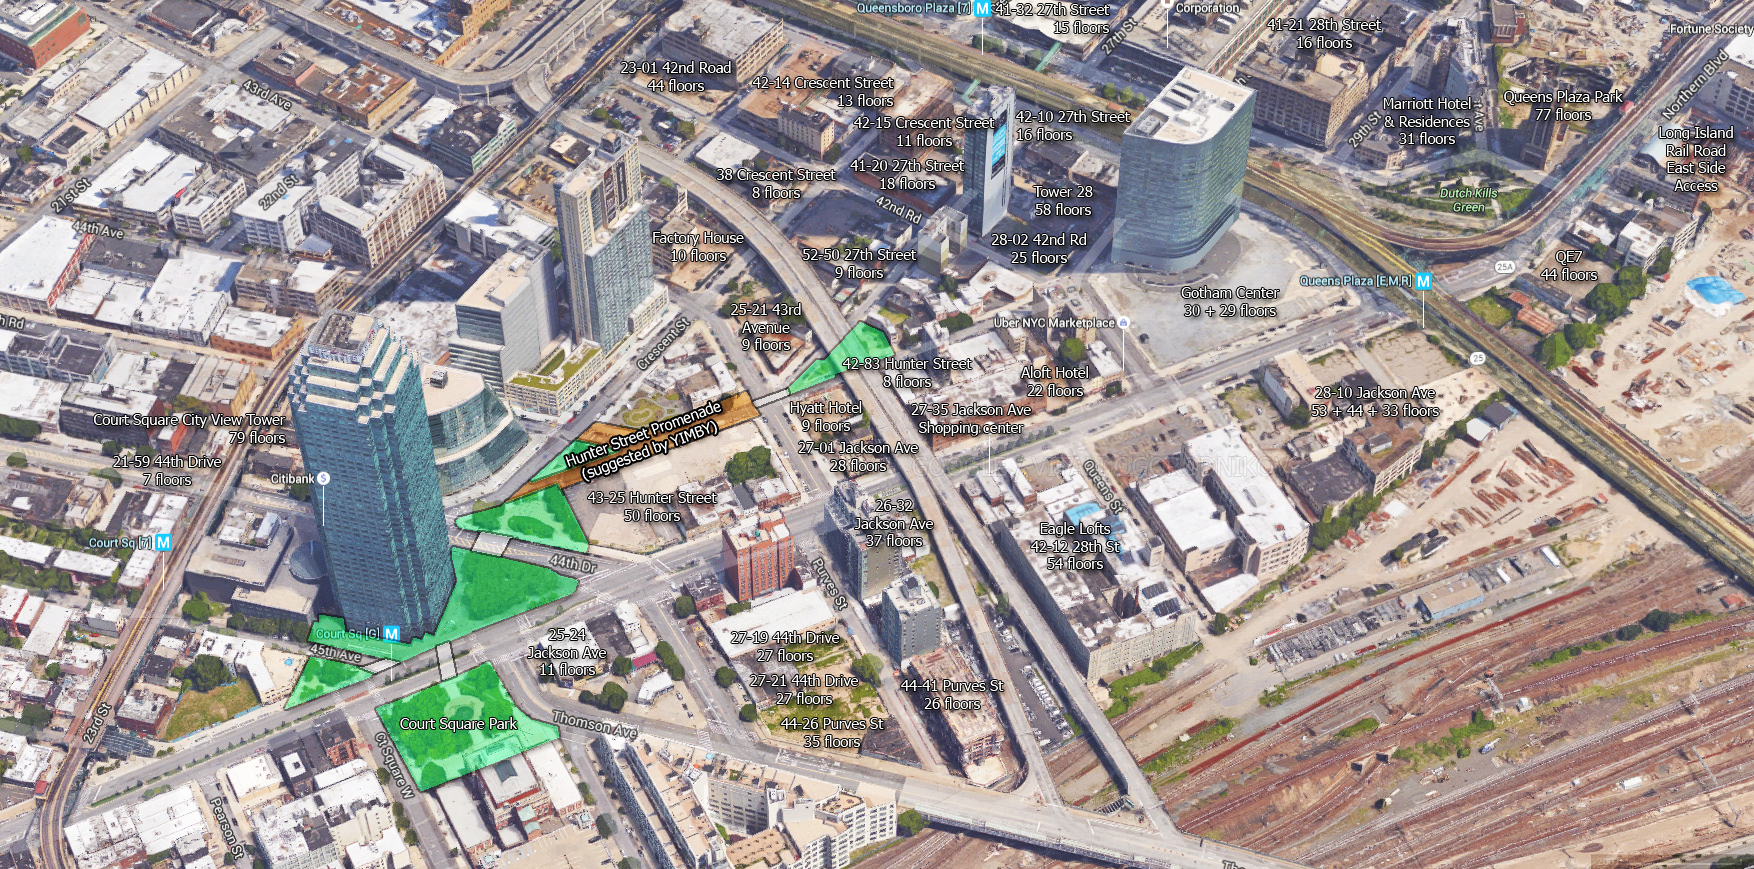 Our suggested street alterations would create a unified green space in the center of the dense district. Text indicates ongoing projects. Original image source: Google